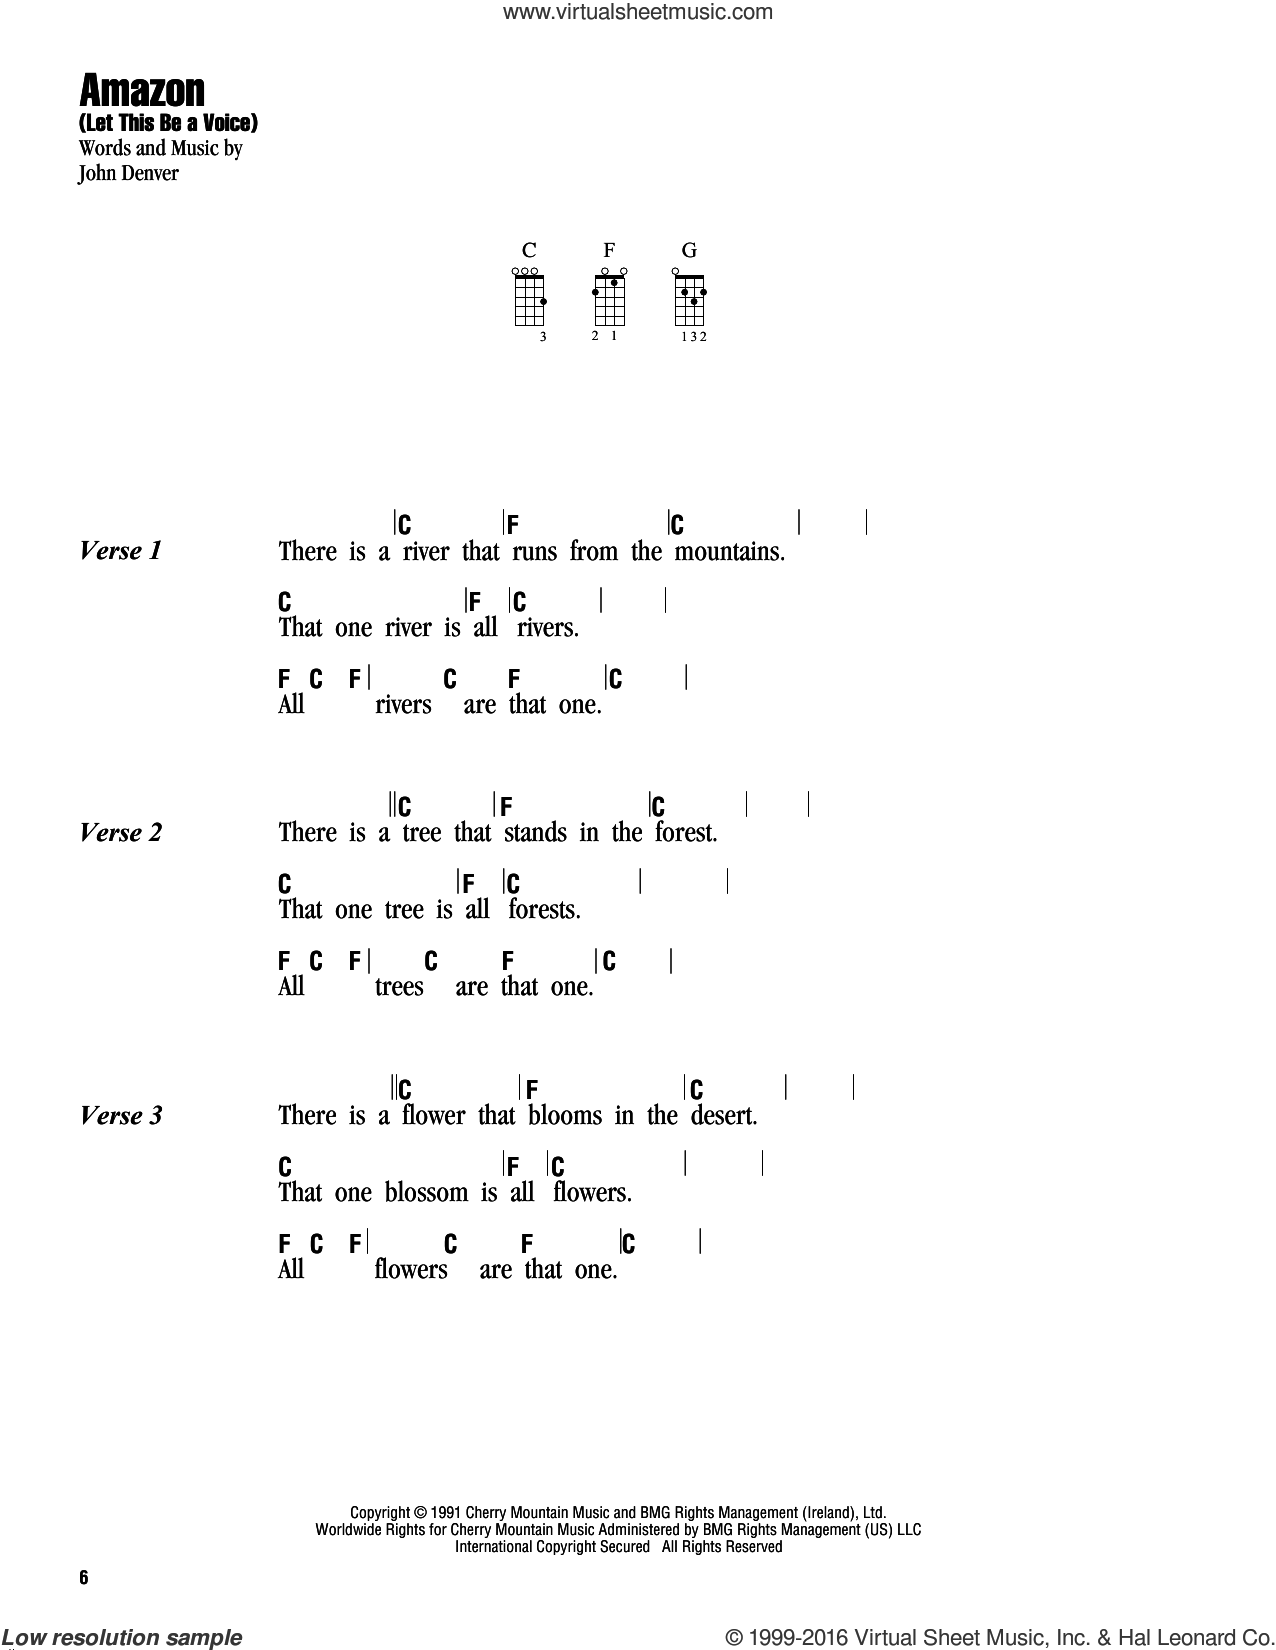 Amazon (Let This Be A Voice) sheet music for ukulele (chords) by John Denver, intermediate skill level